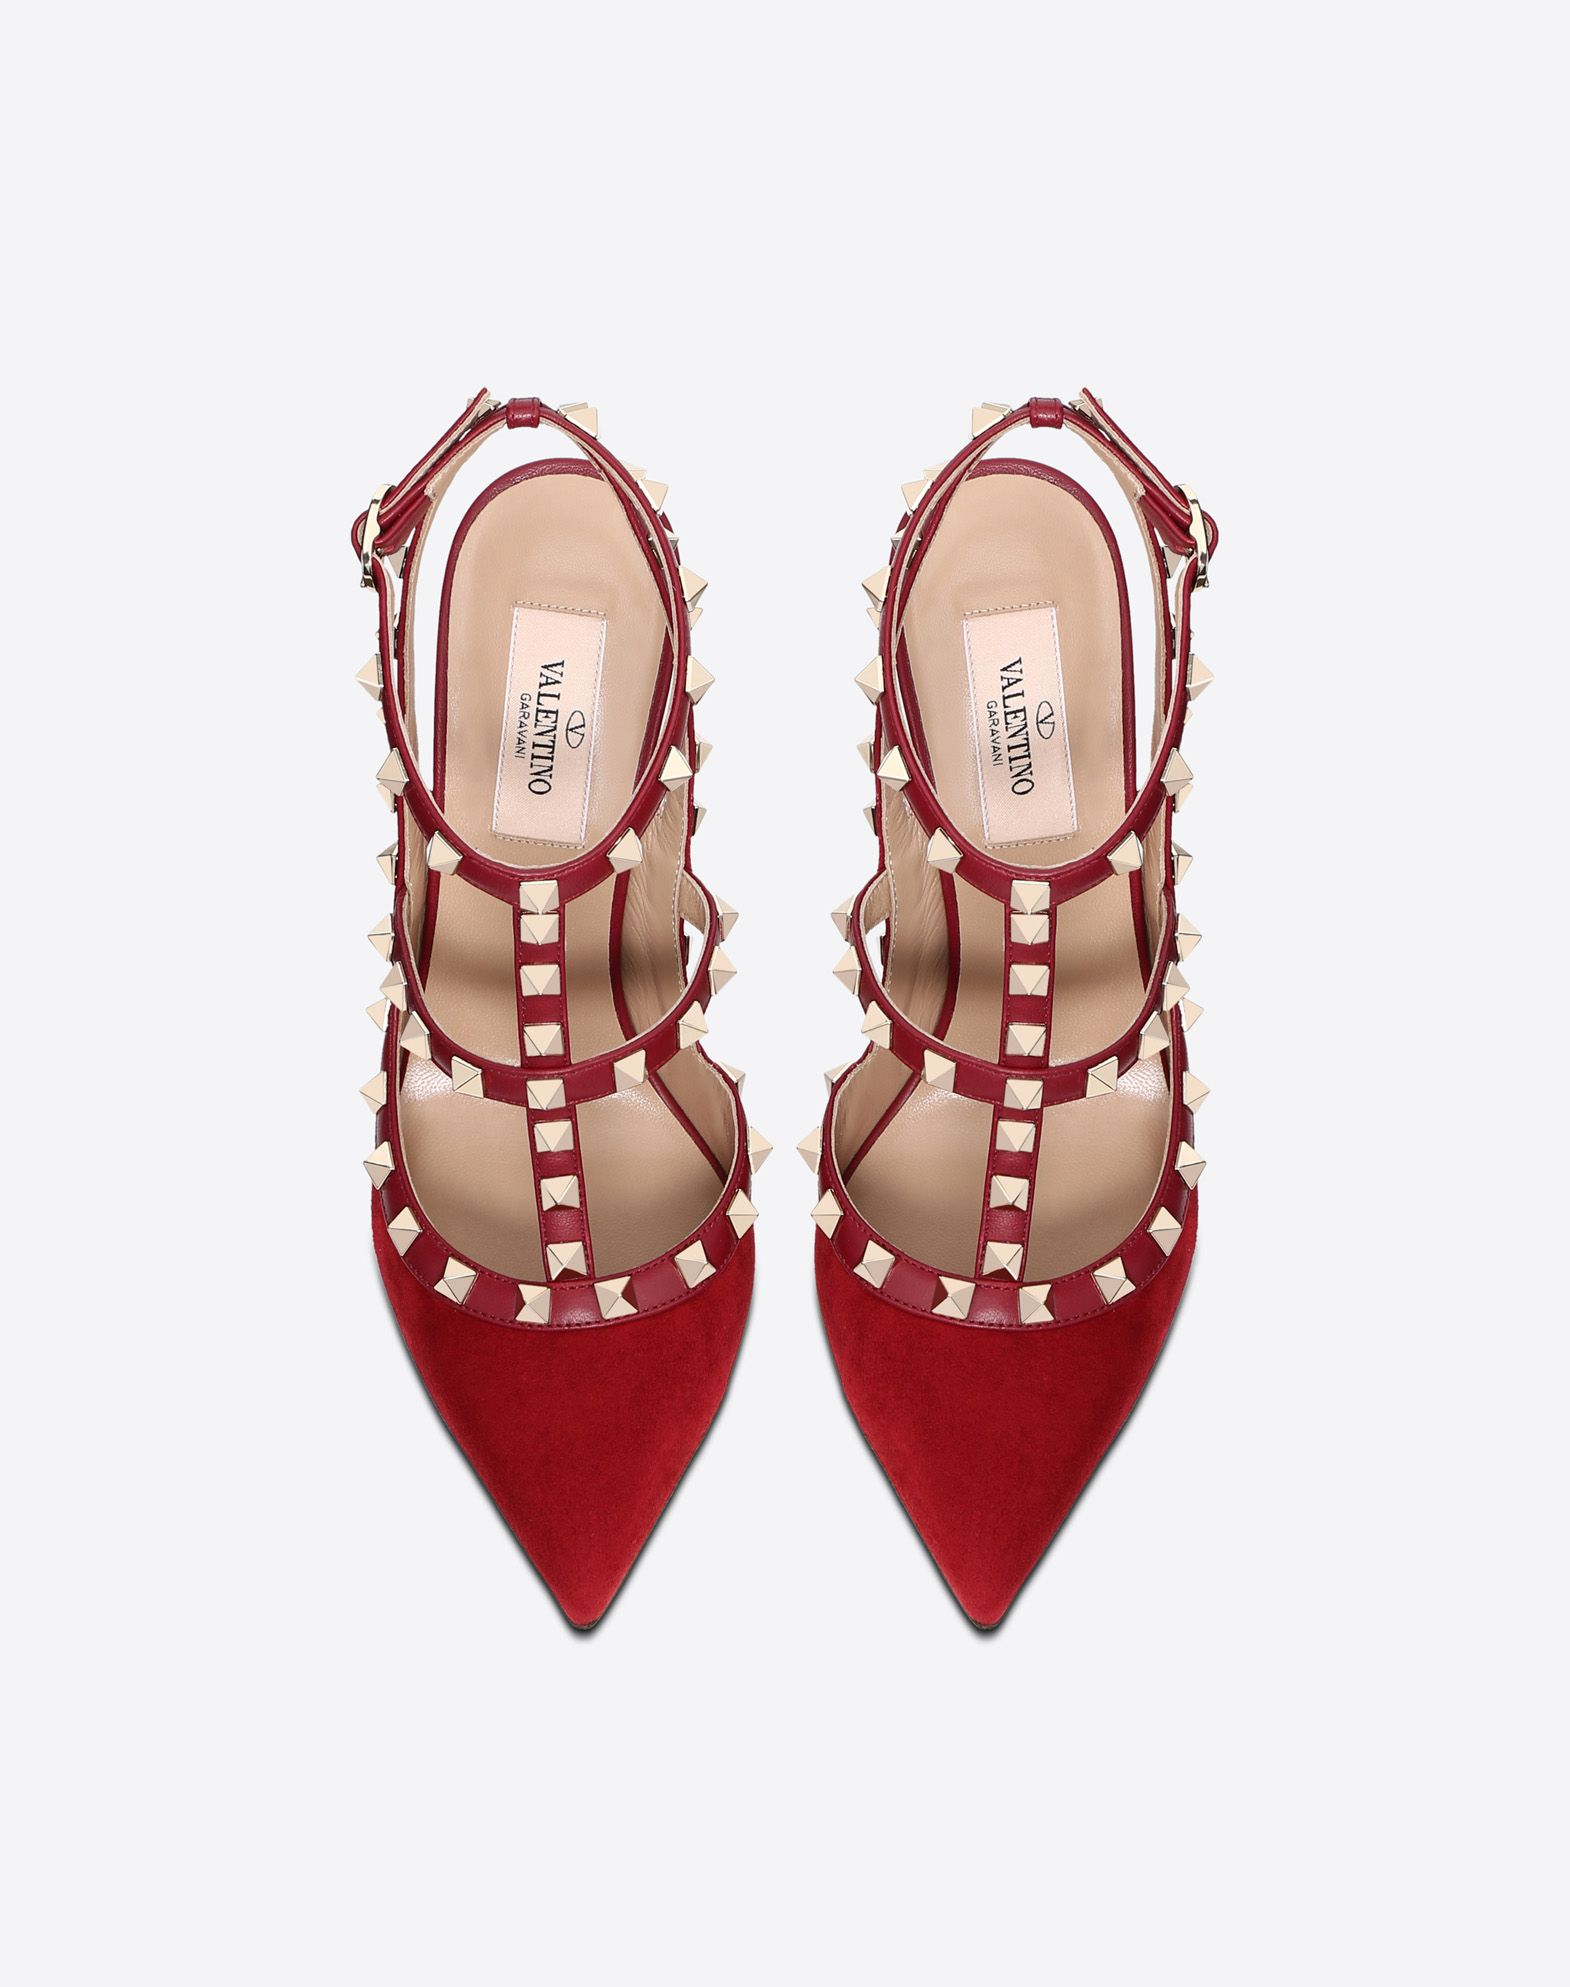 VALENTINO GARAVANI Rockstud Court HIGH HEEL PUMPS D e